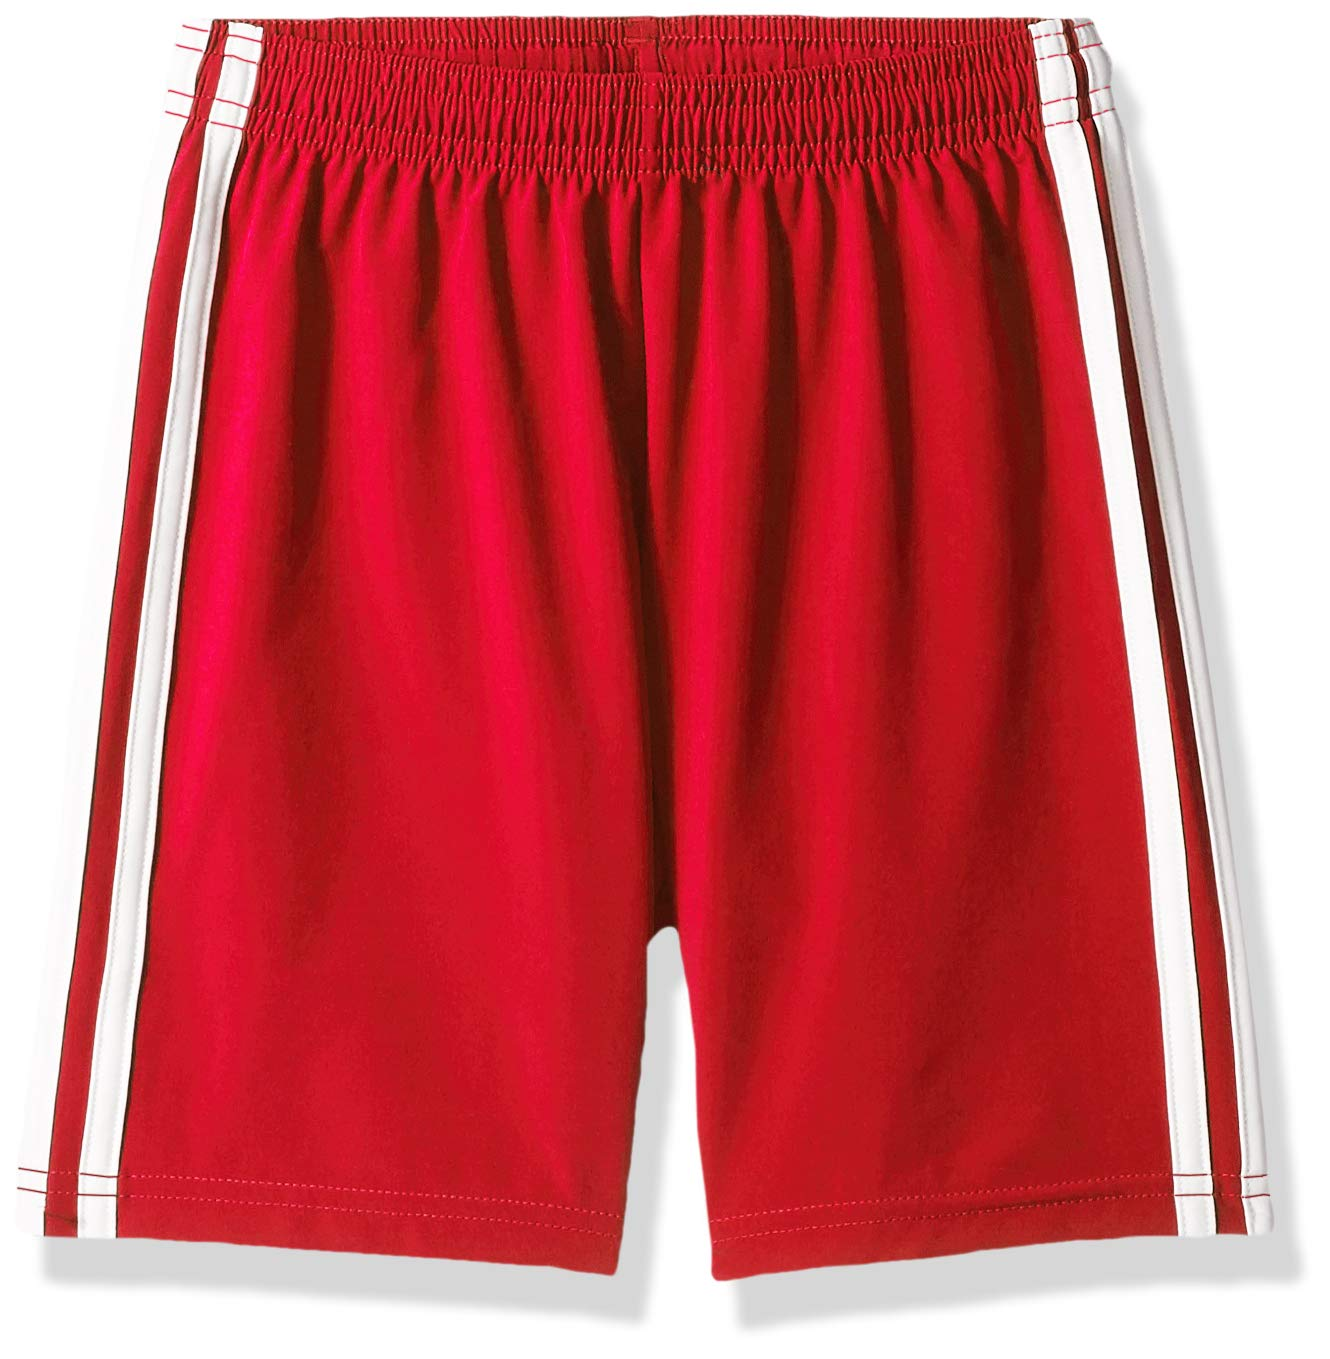 adidas Youth Condivo18 Youth Soccer Shorts, Power Red/White, X-Large by adidas